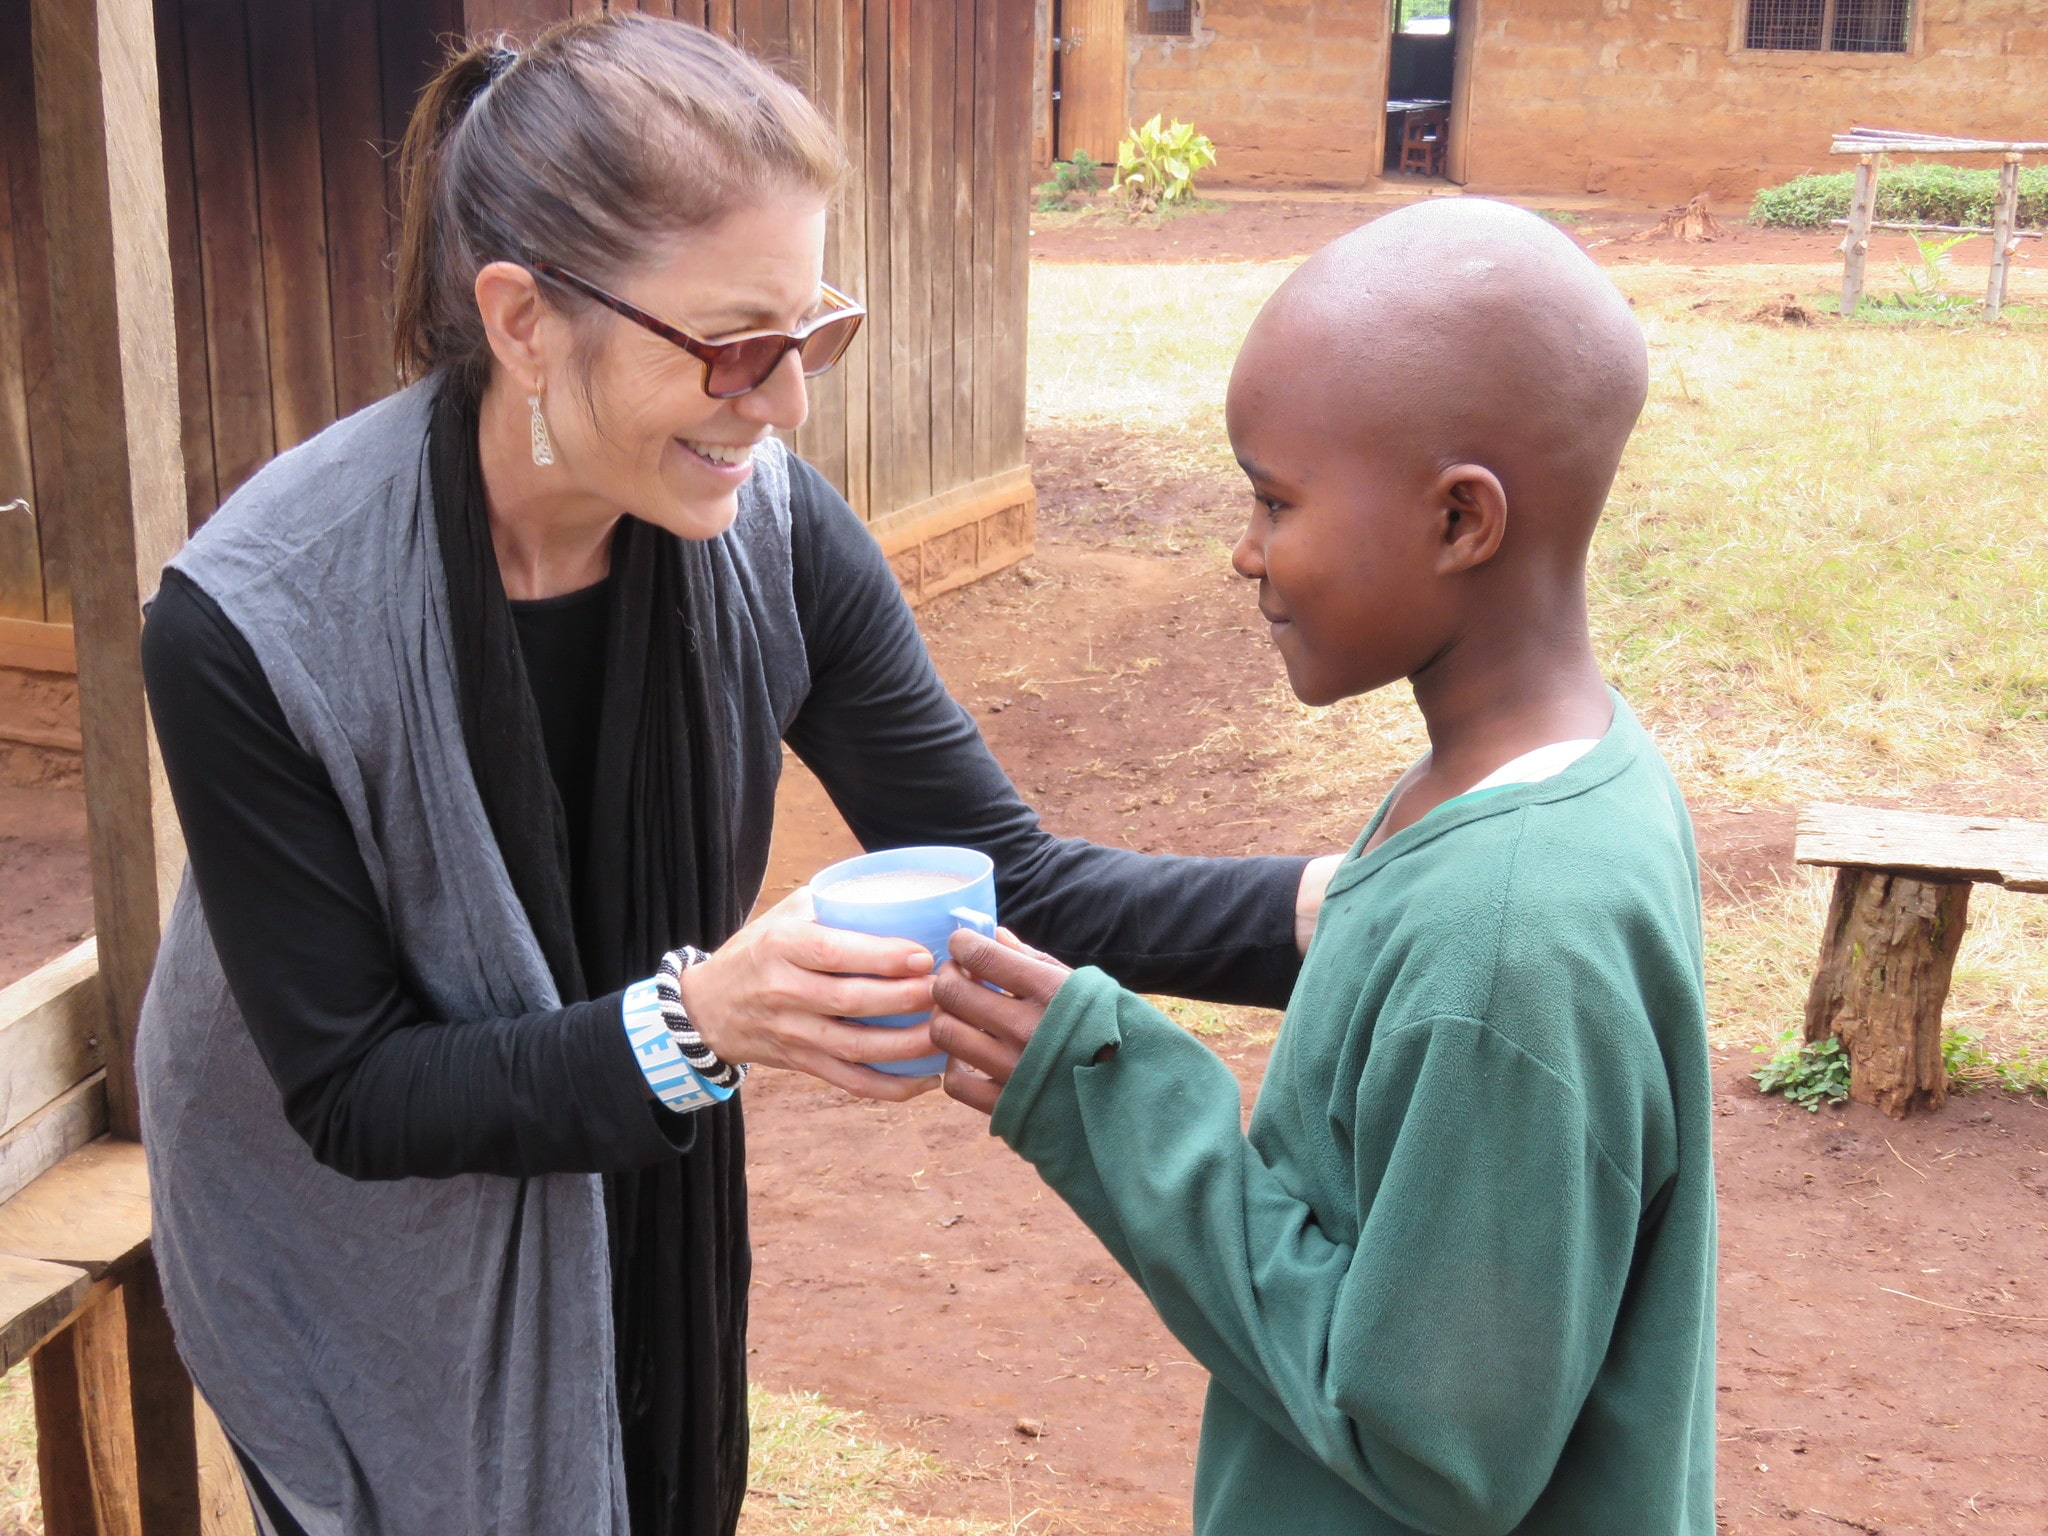 Matanya's Hope founder Michelle Stark serves a child from Kagaani Primary school with porridge.  For many of these students, this porridge is the only meal they will receive in a day.